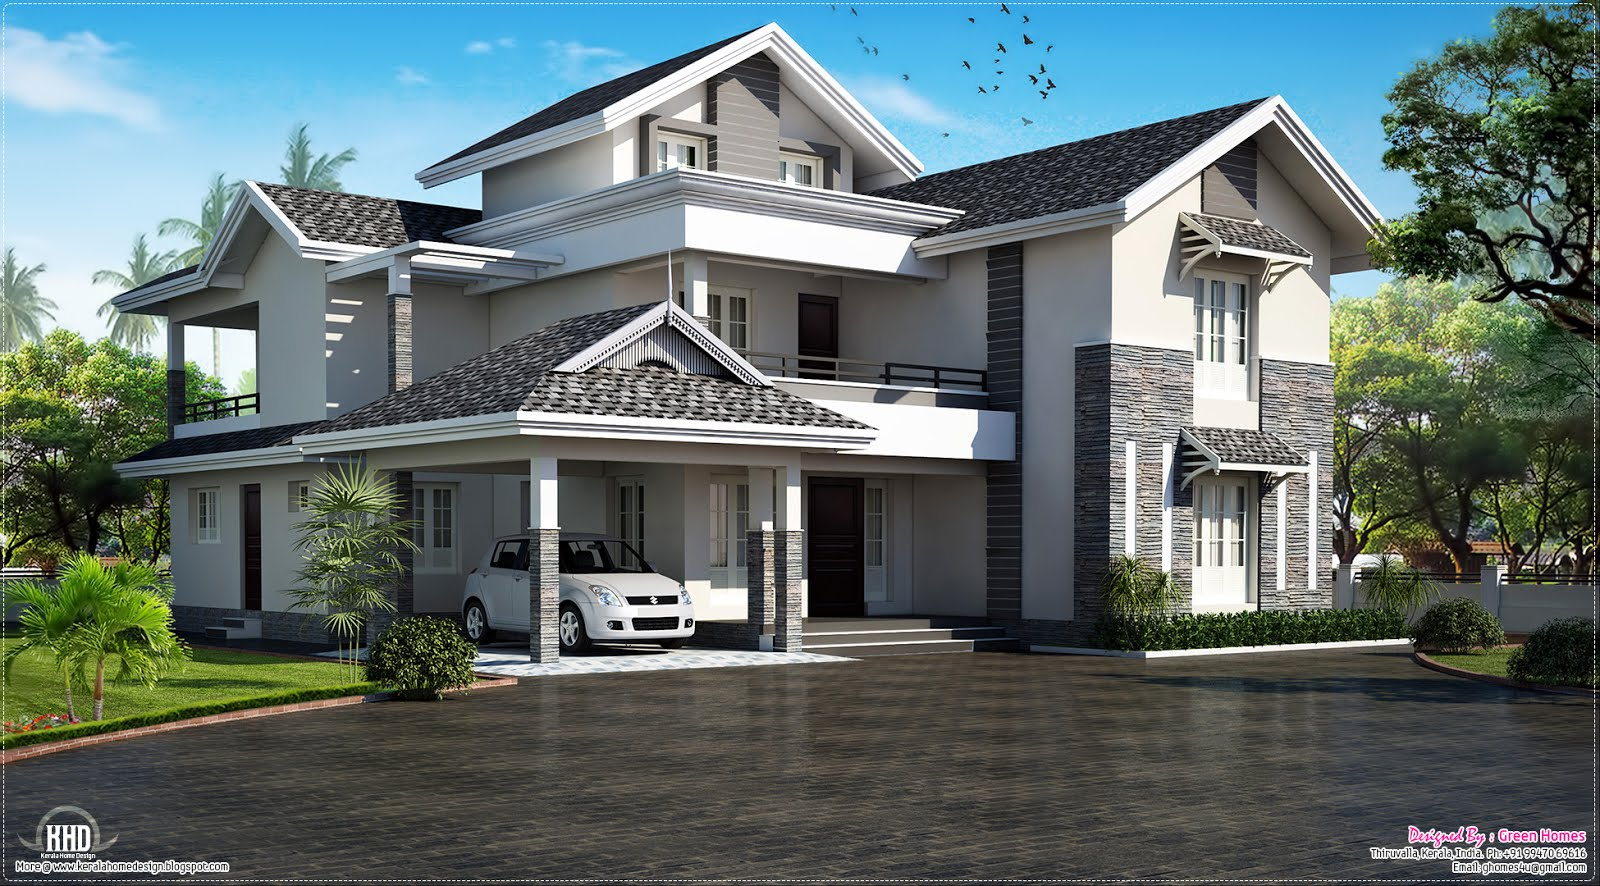 Modern sloping roof house villa design kerala home design and floor plans - Modern house designs with attic ...